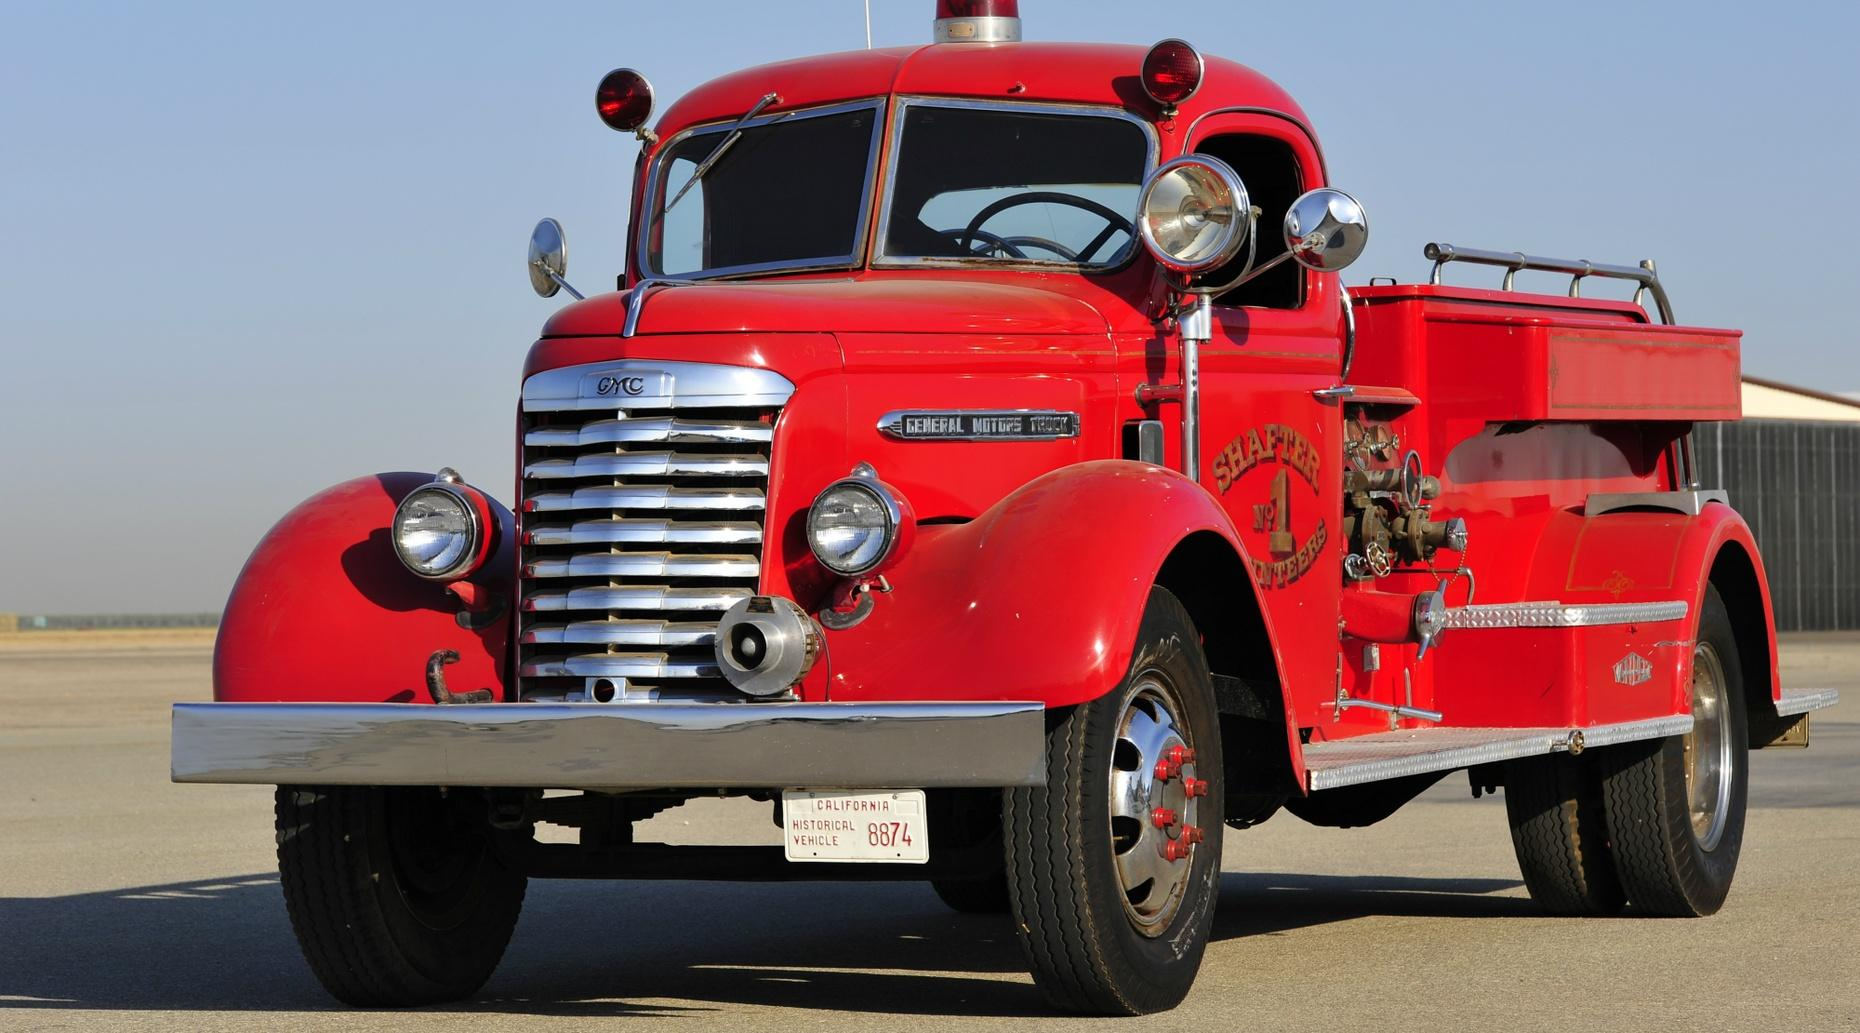 Classic Fire Engine Tour in San Francisco